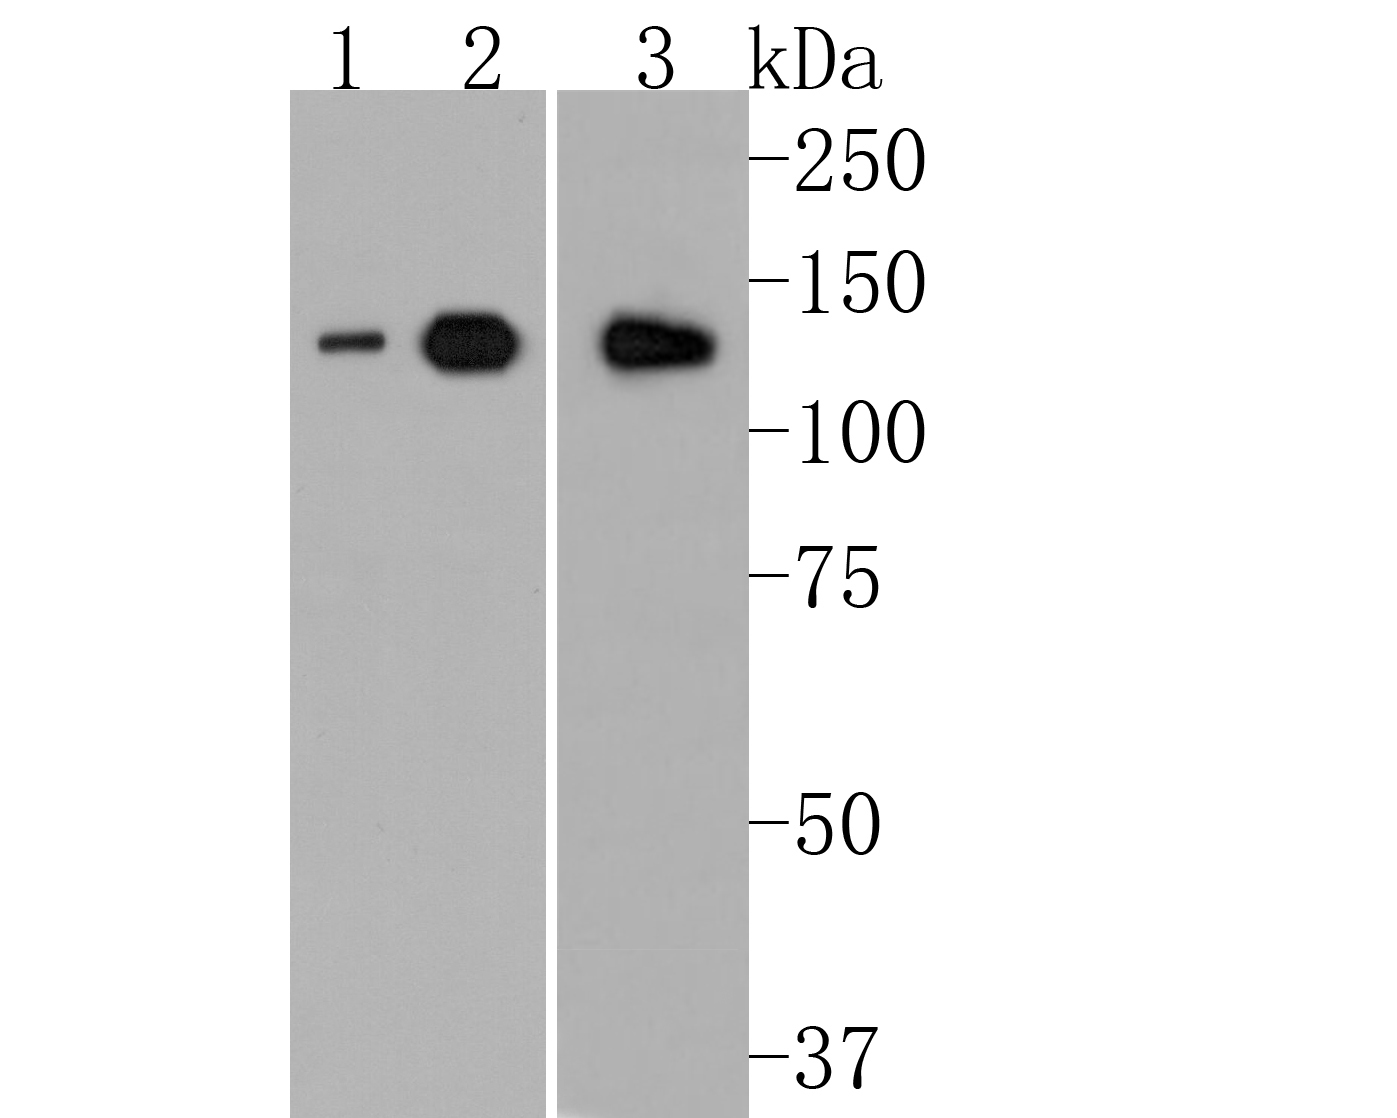 Western blot analysis of ULK1 on different lysates. Proteins were transferred to a PVDF membrane and blocked with 5% BSA in PBS for 1 hour at room temperature. The primary antibody (ET1704-63, 1/500) was used in 5% BSA at room temperature for 2 hours. Goat Anti-Rabbit IgG - HRP Secondary Antibody (HA1001) at 1:5,000 dilution was used for 1 hour at room temperature.<br />  Positive control: <br />  Lane 1: SH-SY5Y cell lysate<br />  Lane 2: MCF-7 cell lysate<br />  Lane 3: mouse spleen tissue lysate